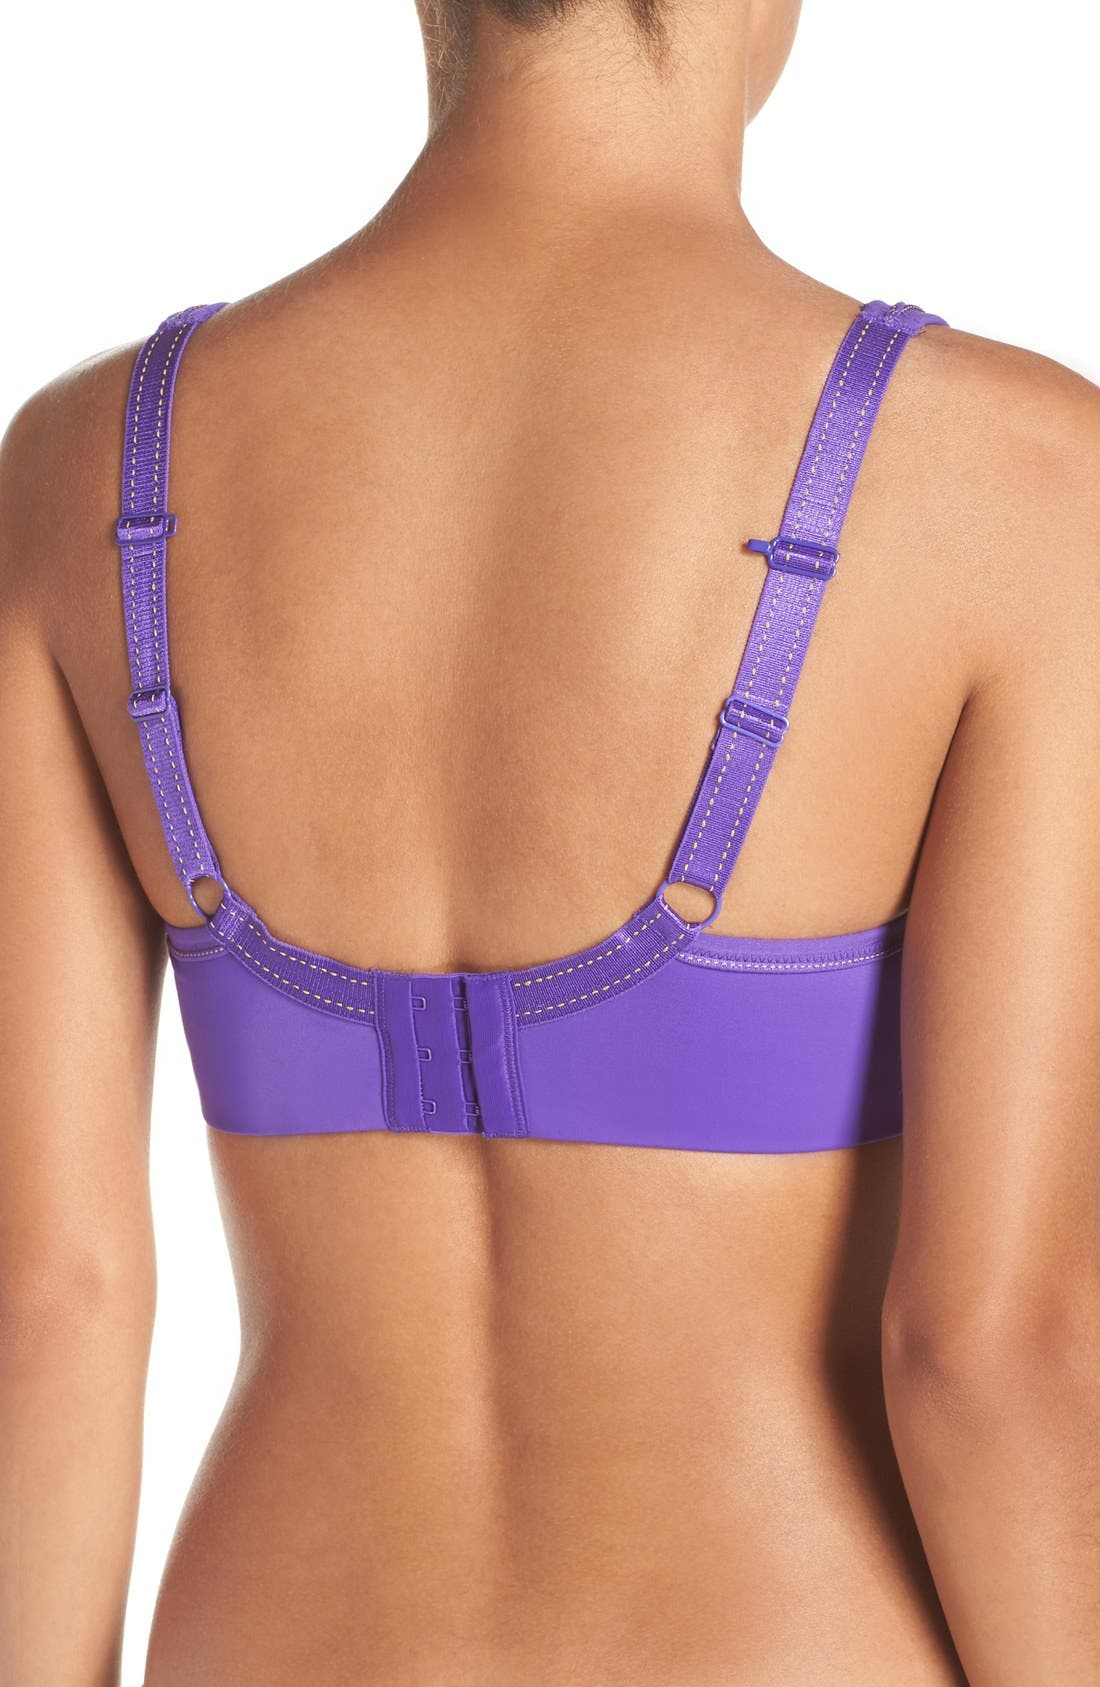 Underwire Sports Bra,                             Alternate thumbnail 18, color,